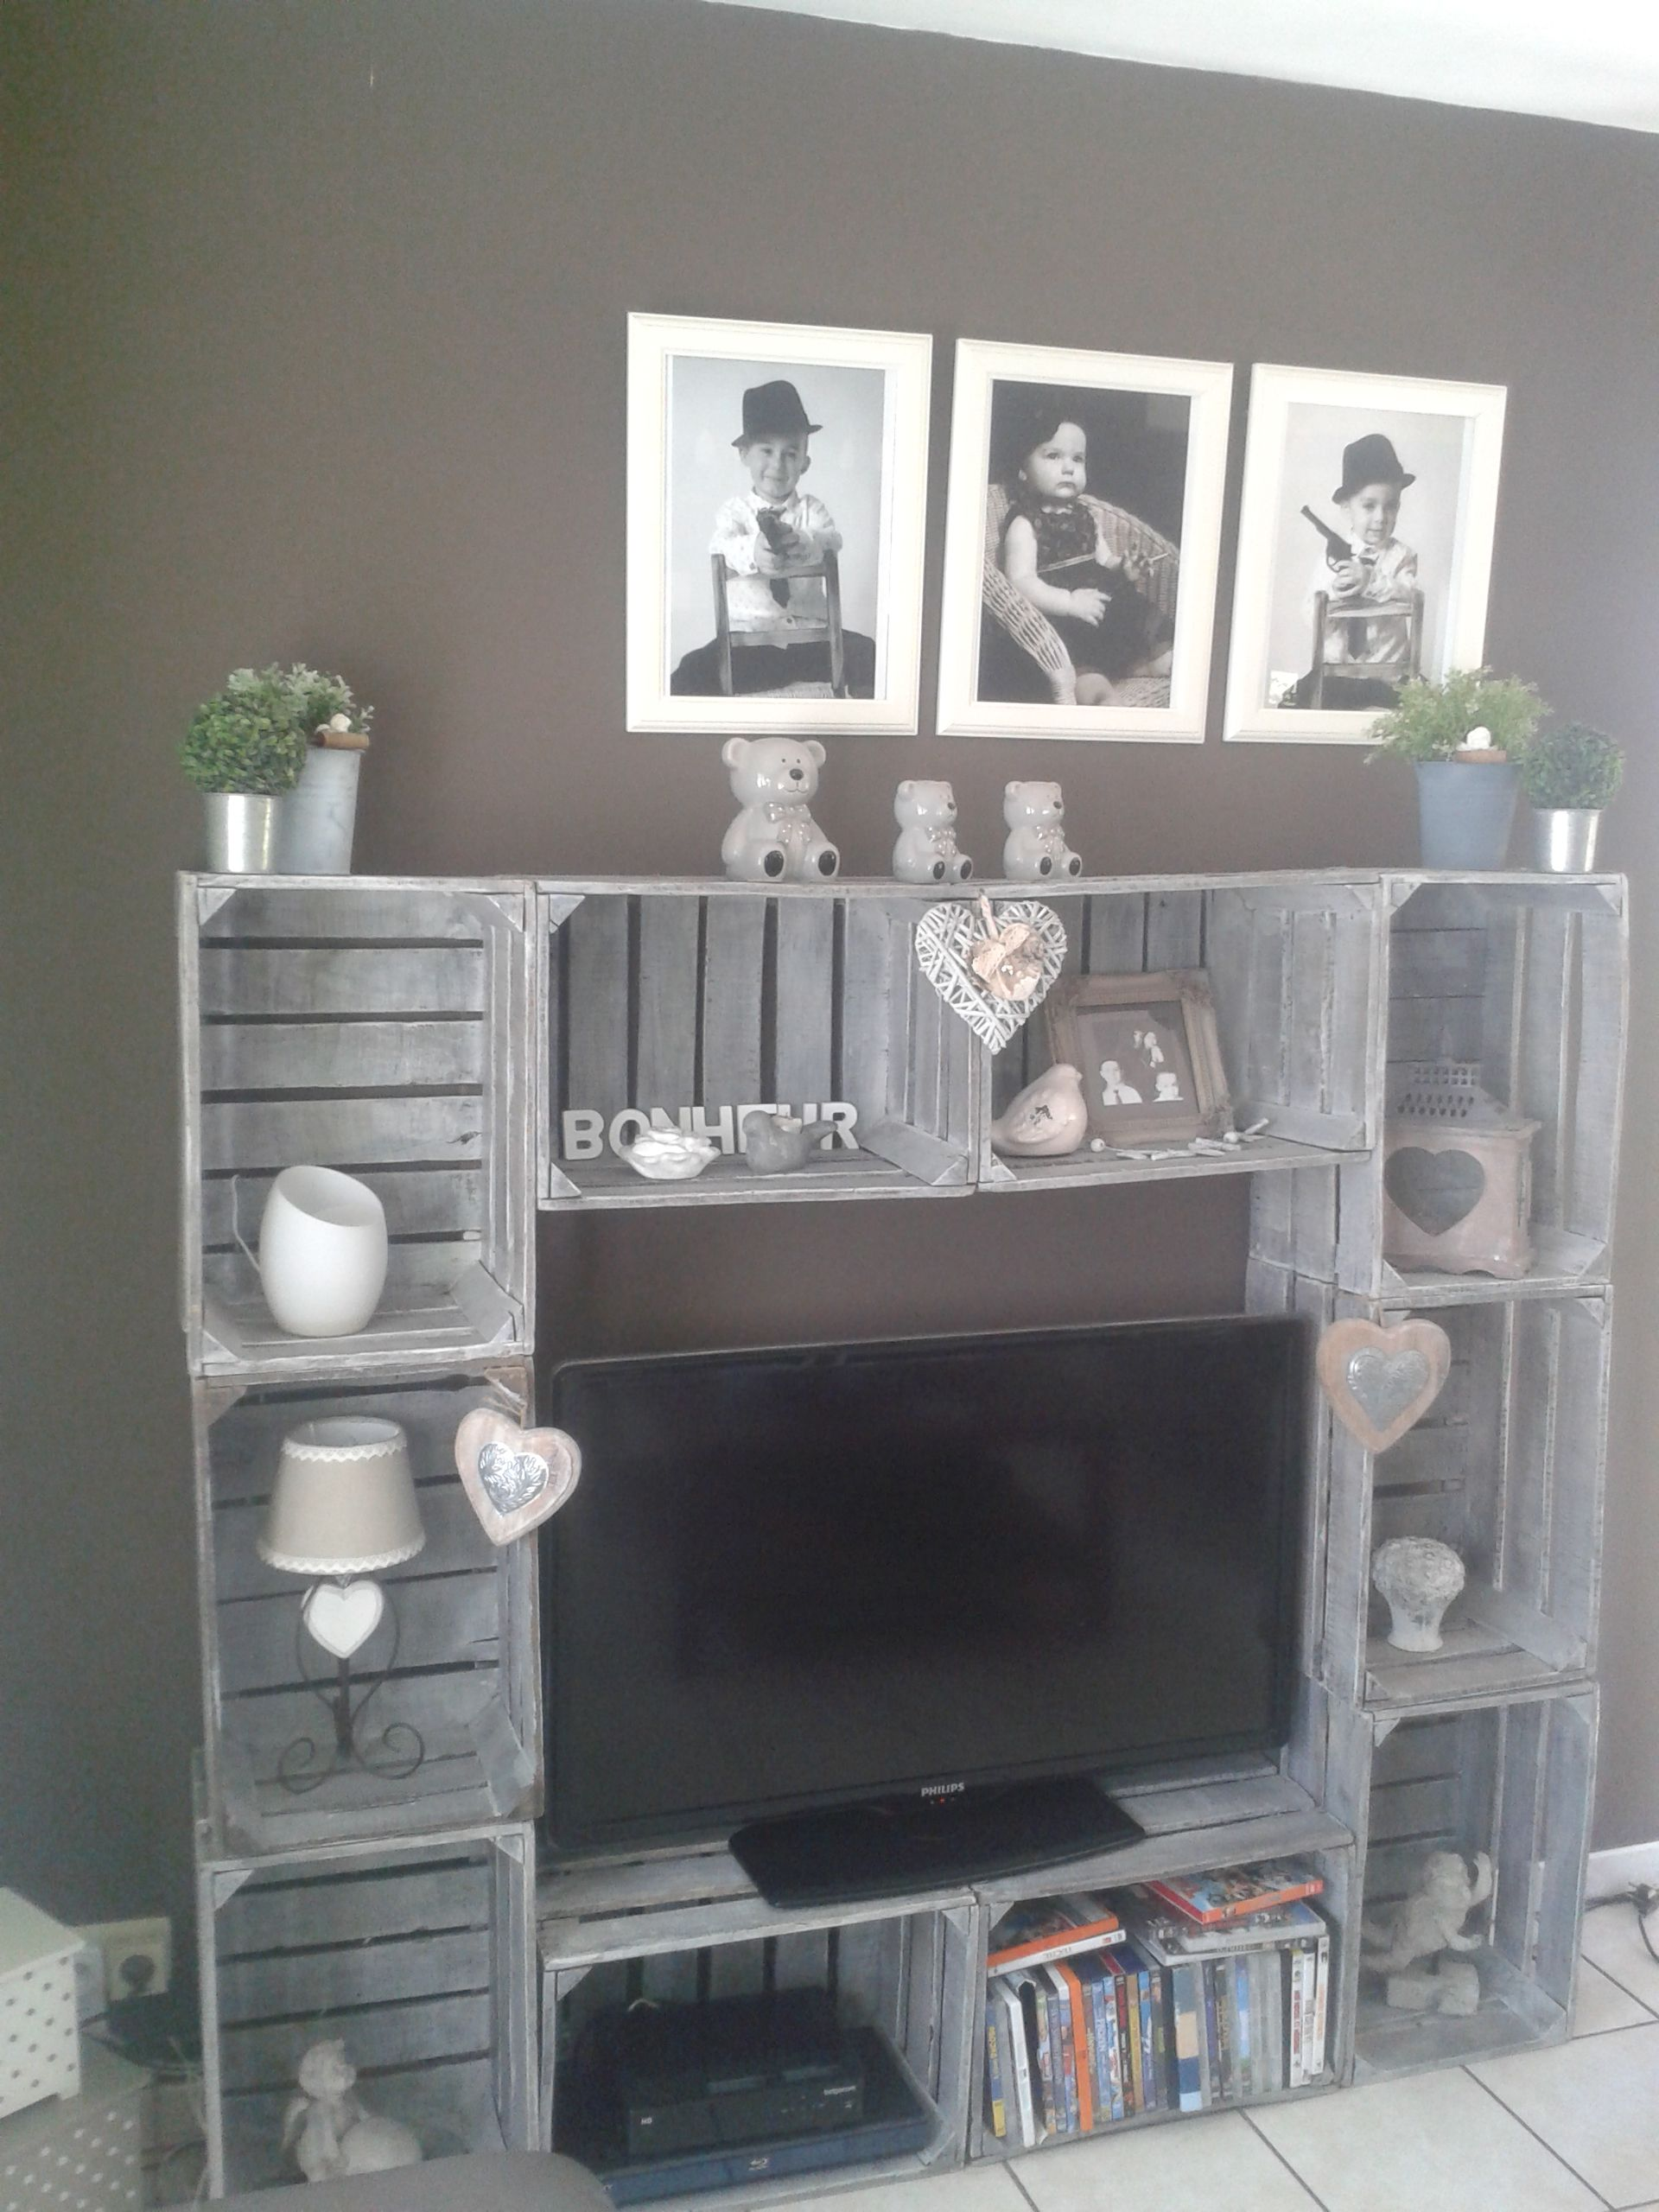 meuble t l by sophie d fabriqu avec des caisses. Black Bedroom Furniture Sets. Home Design Ideas